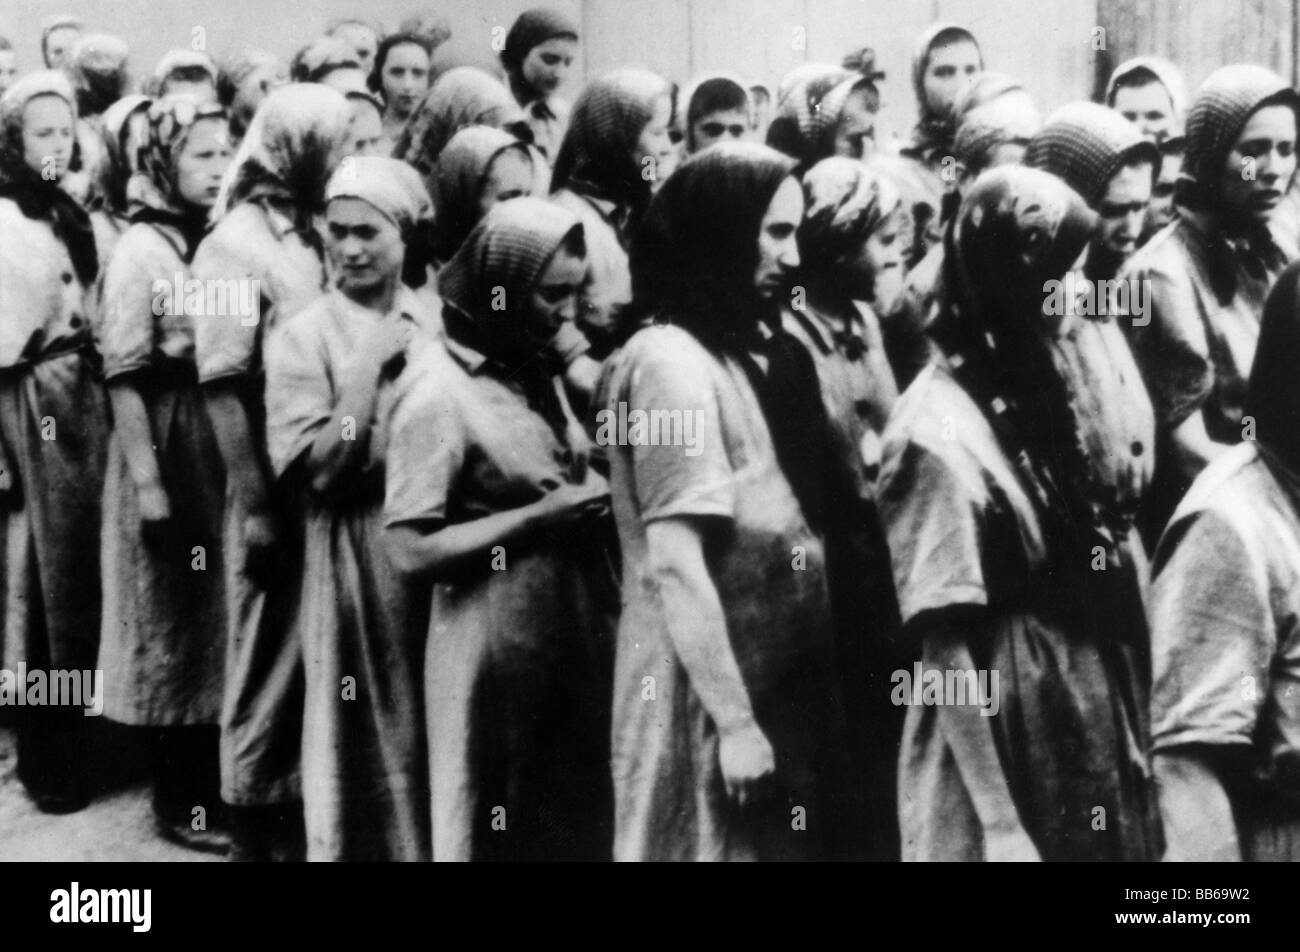 camp women Gender issues related to the nazi concentration camps and the holocaust what was the experience like for women how was this different.